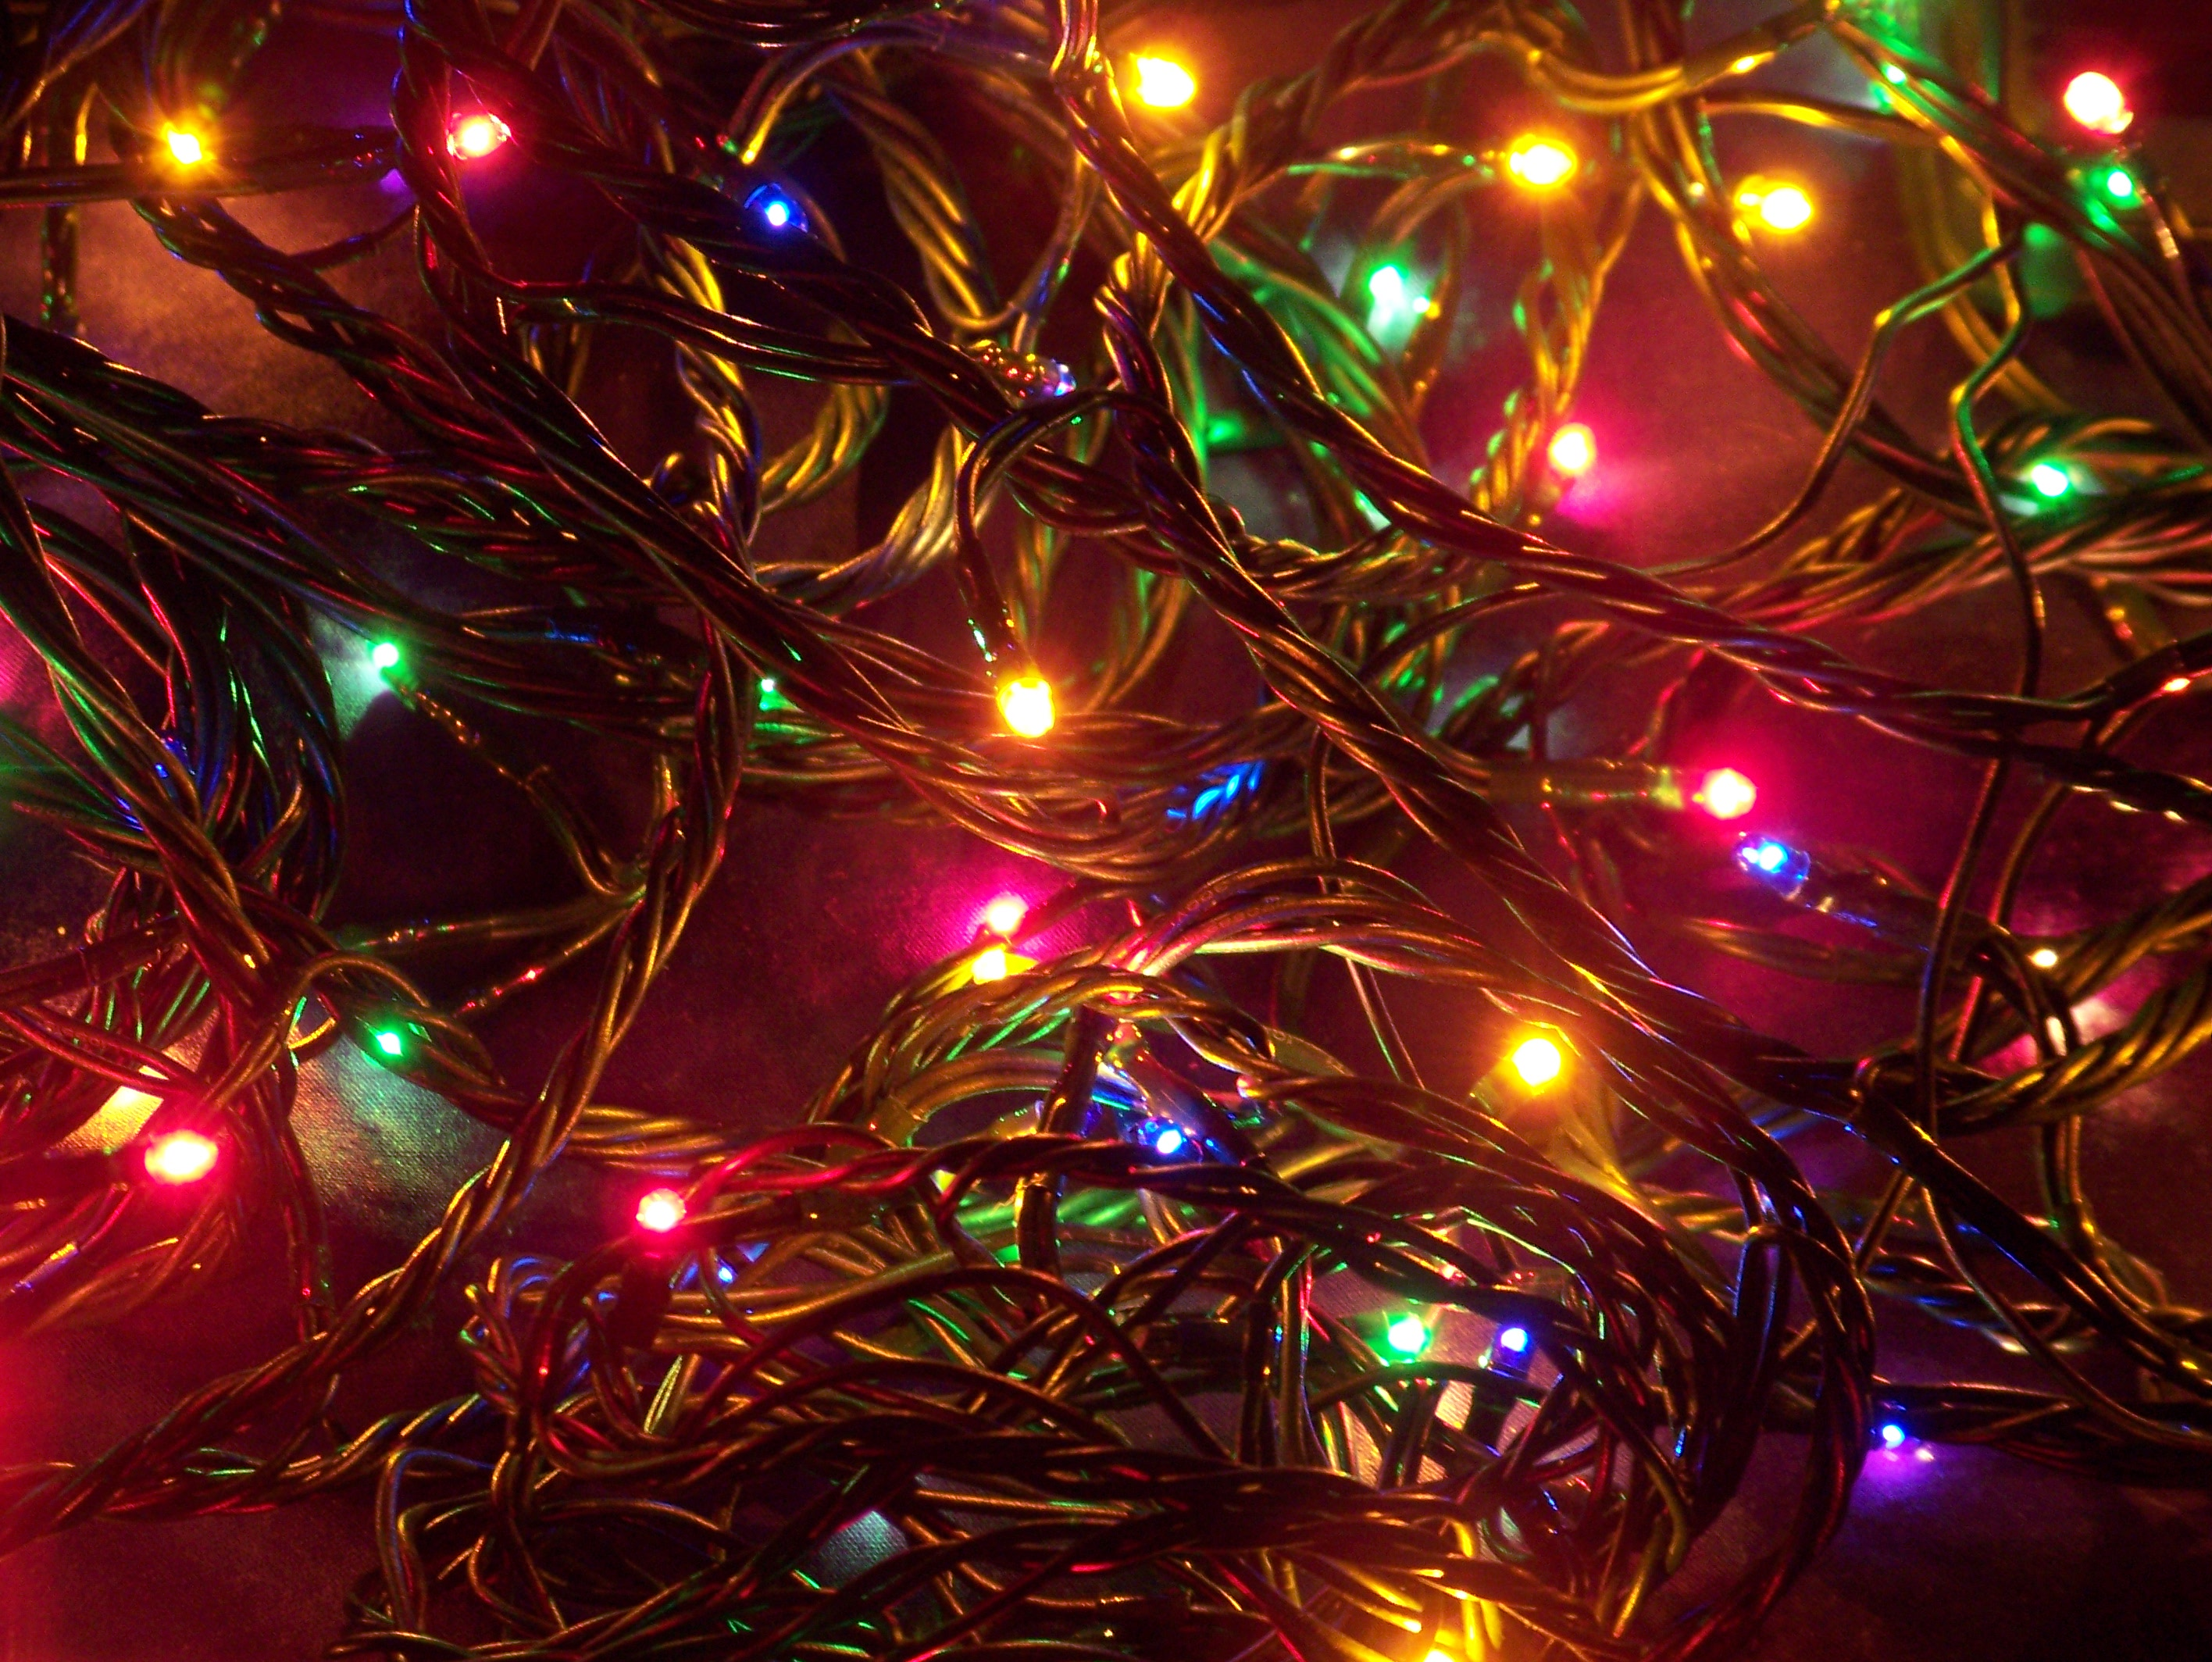 Holiday Decorations: 3 Tips for Storing | Great Day Moving of ...